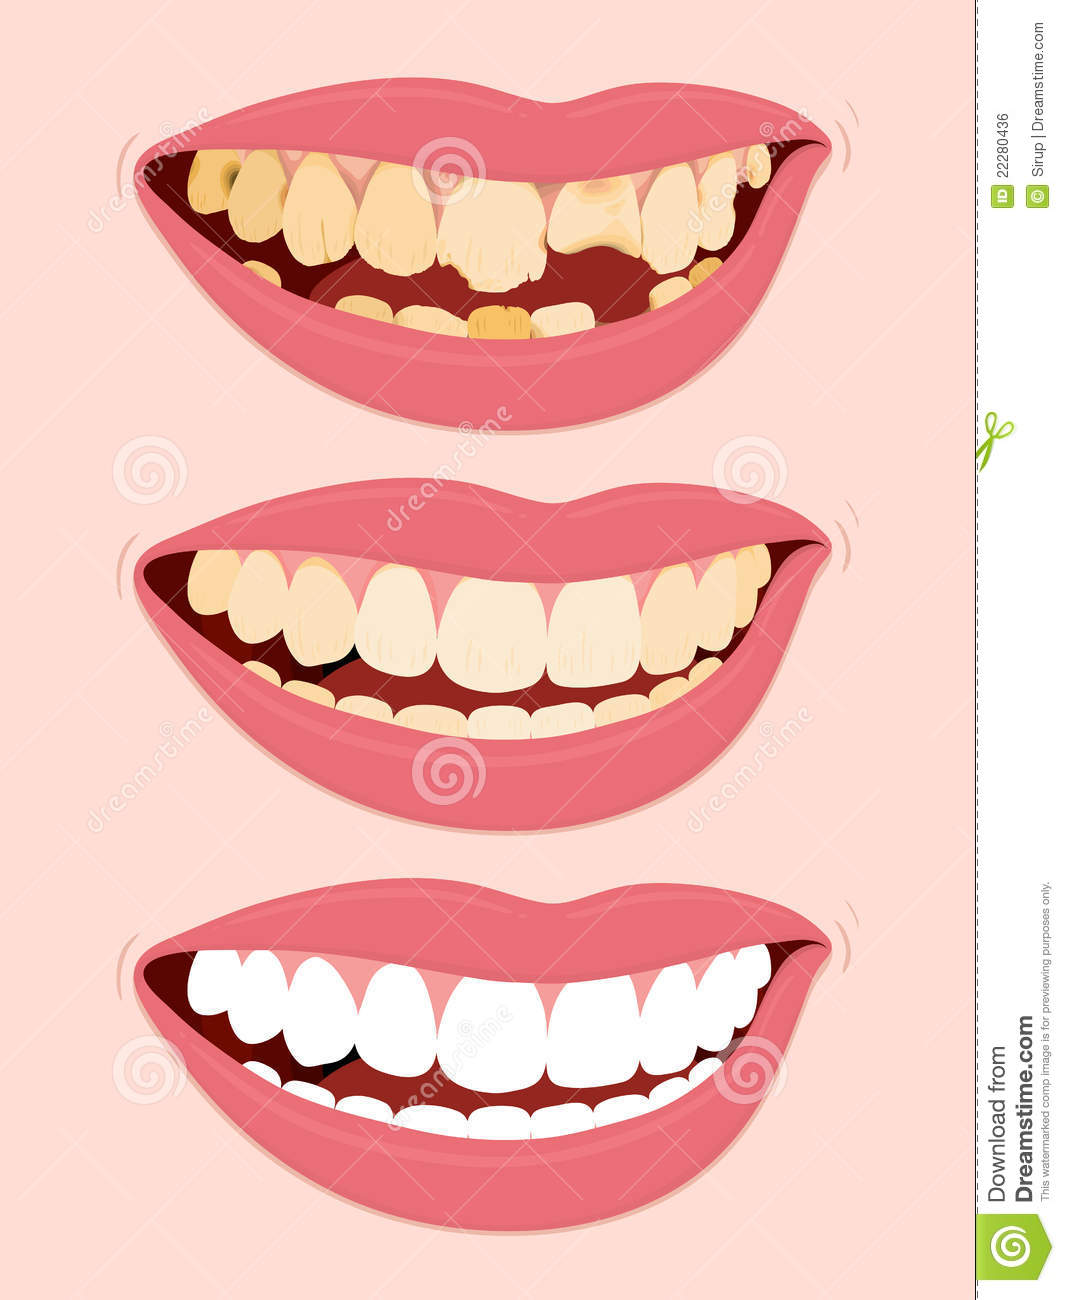 Progressive Stages Of Tooth Decay Caries Royalty Free